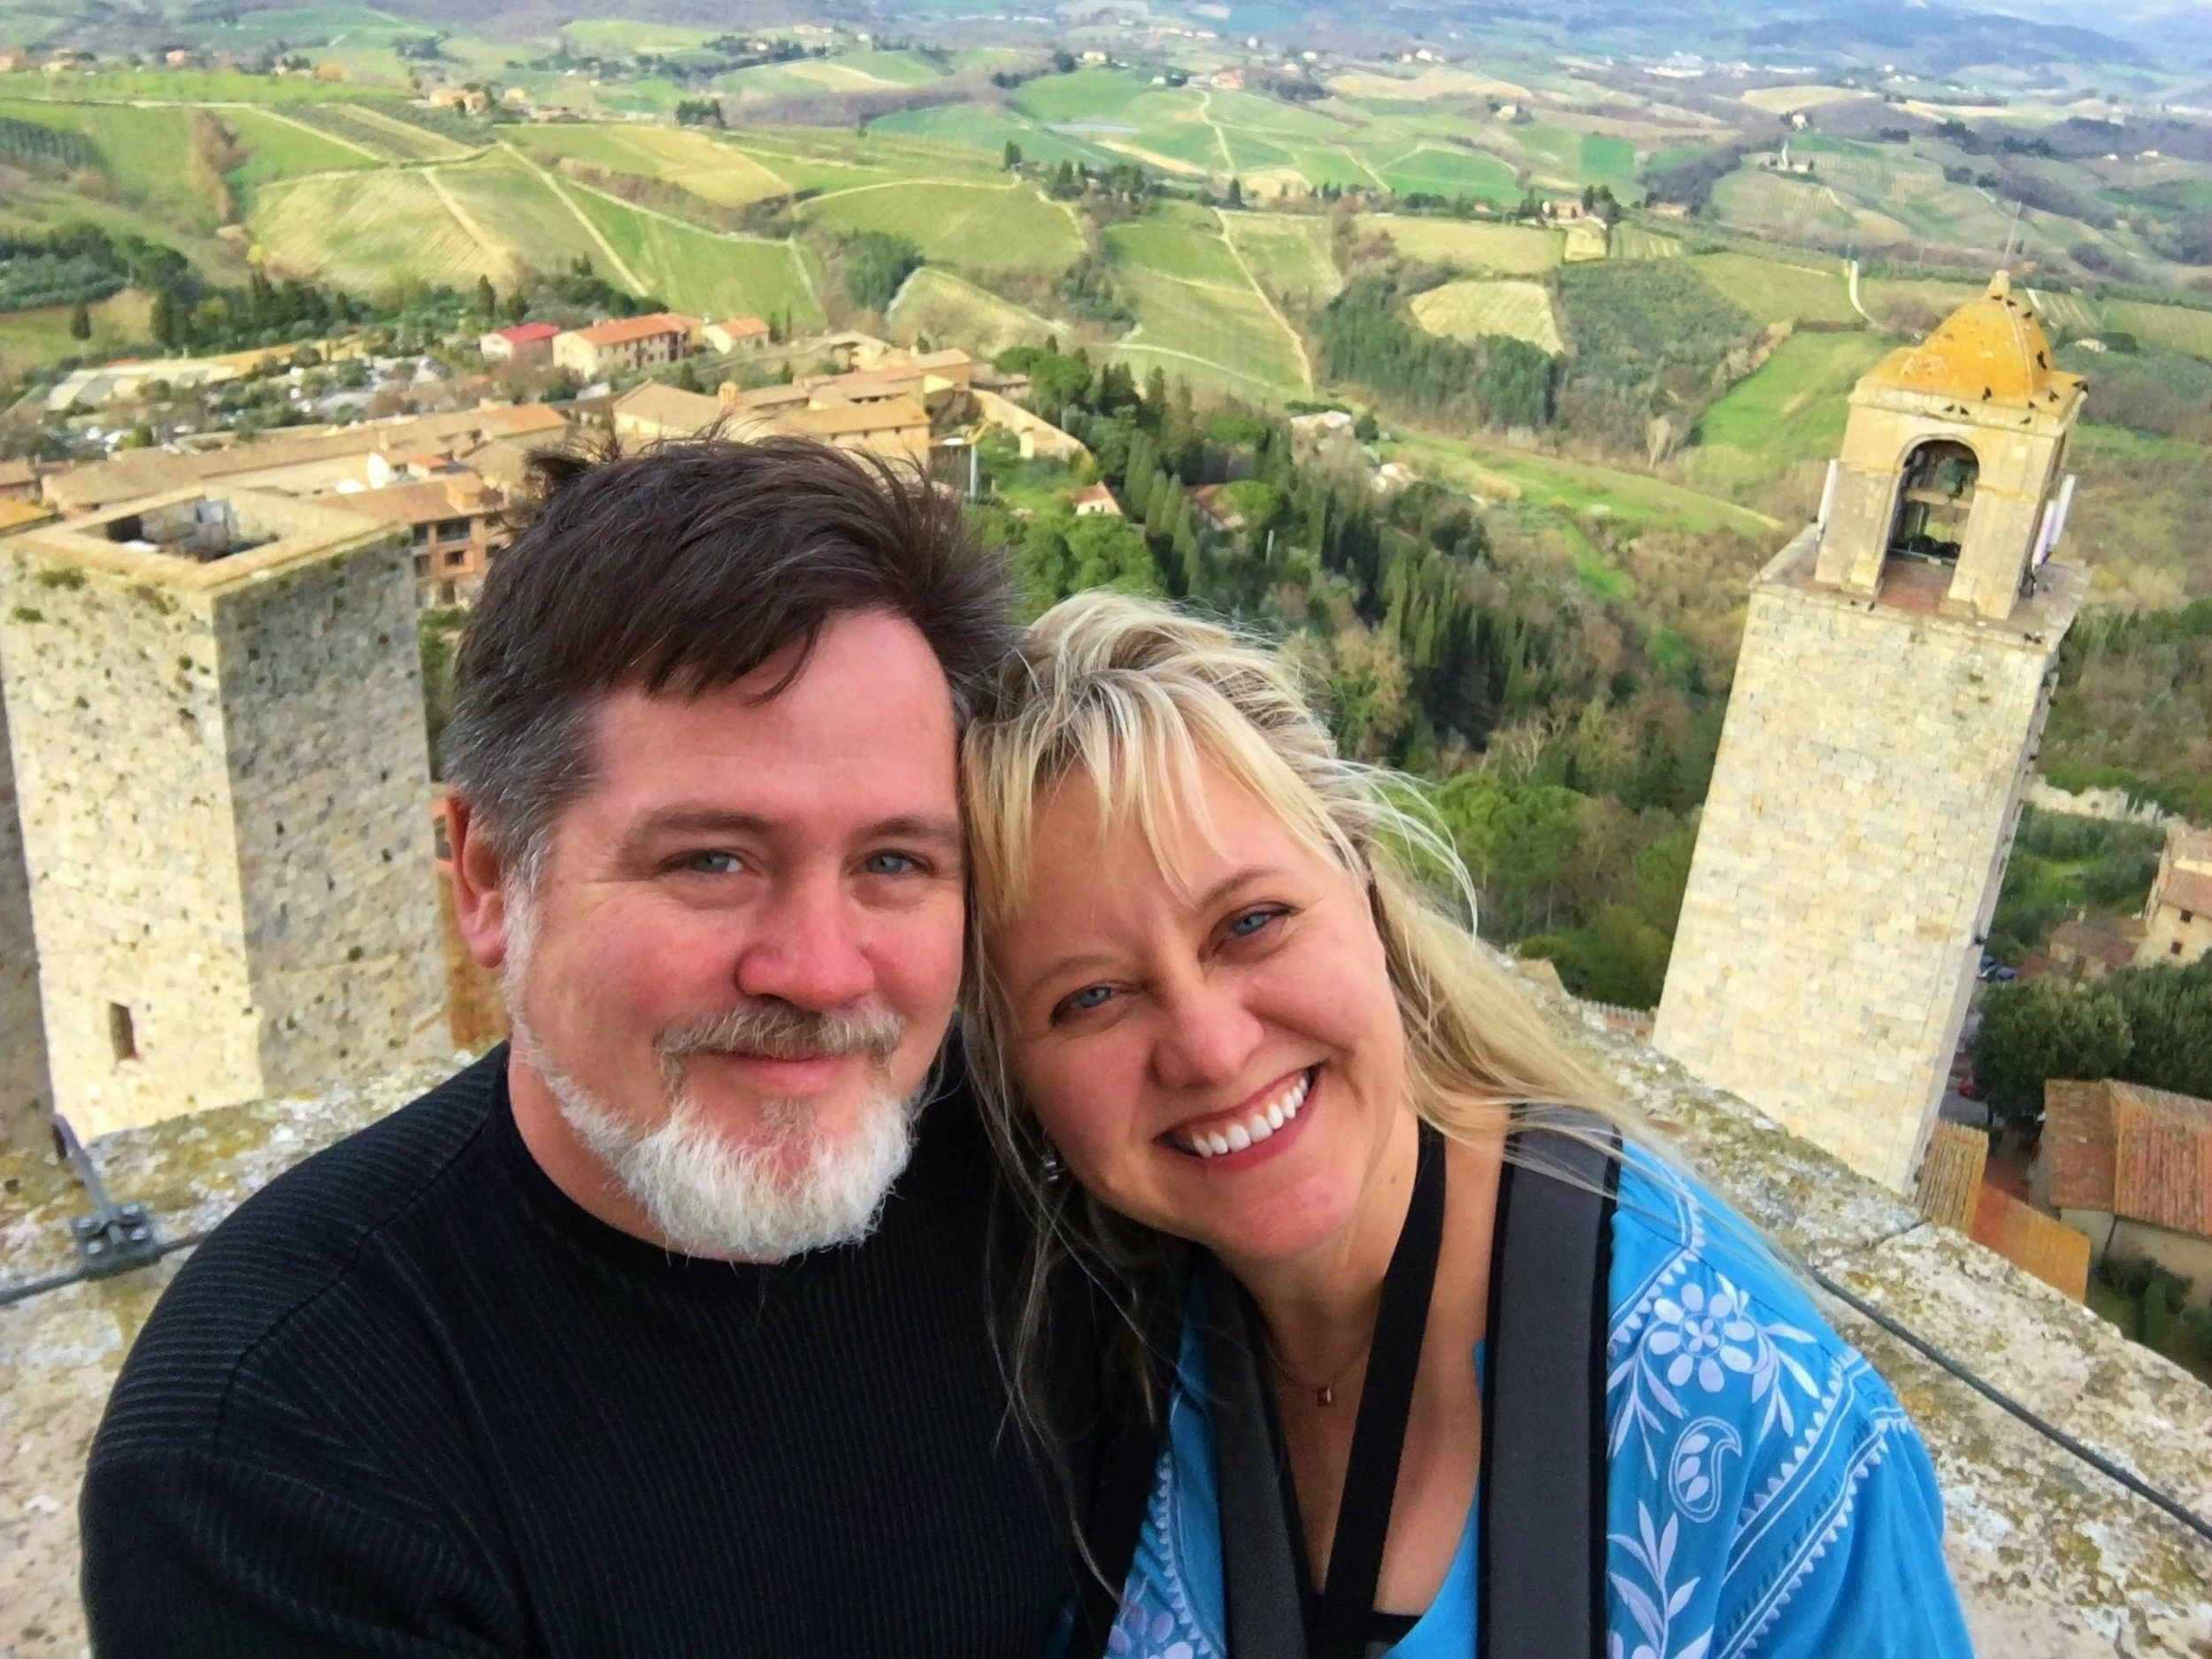 Who are Scott & Janet? Both are native Texans who love the adventure of travel. Scott is a computer IT specialist and home brewer. Janet is a food scientist specializing in food safety and a master gardener. Together, they've been to more than 25 countries and 47 of the 50 states in the U.S.   They live in San Antonio, Texas